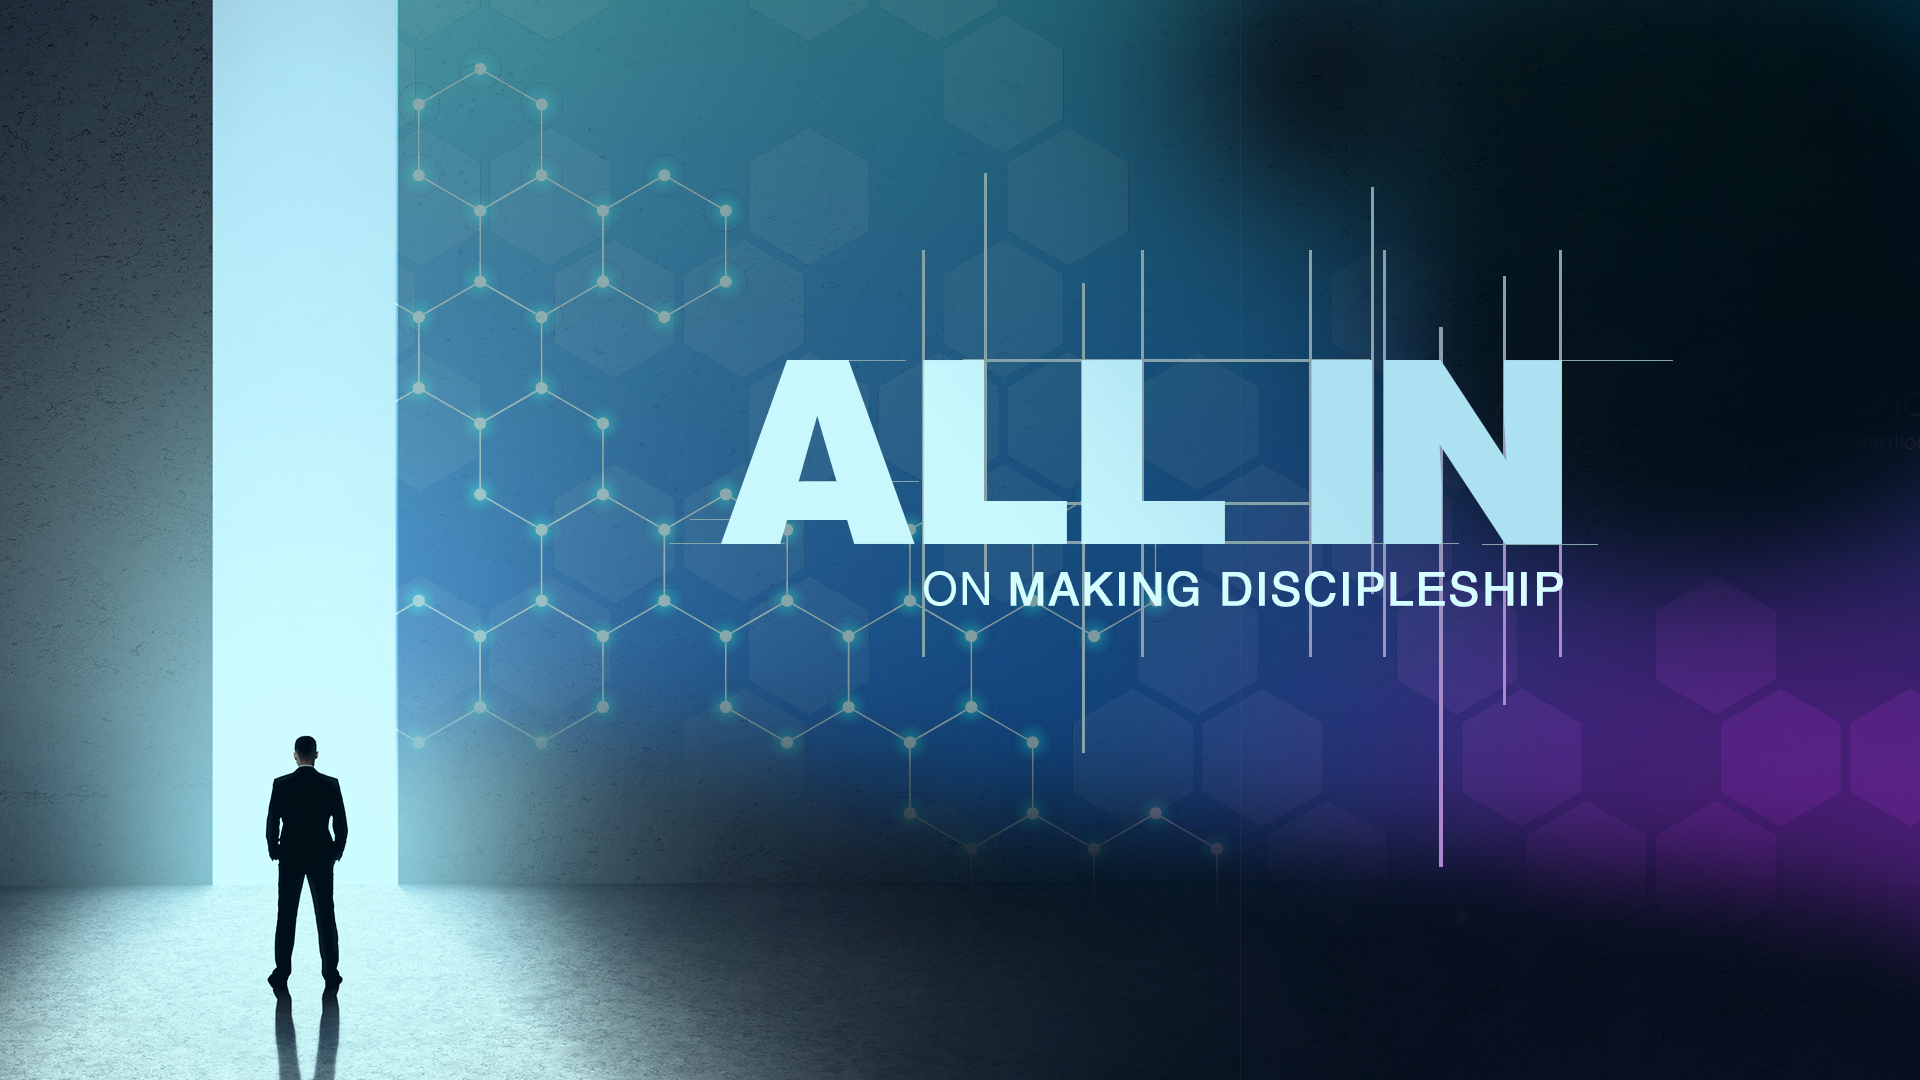 All In On Making Discipleship